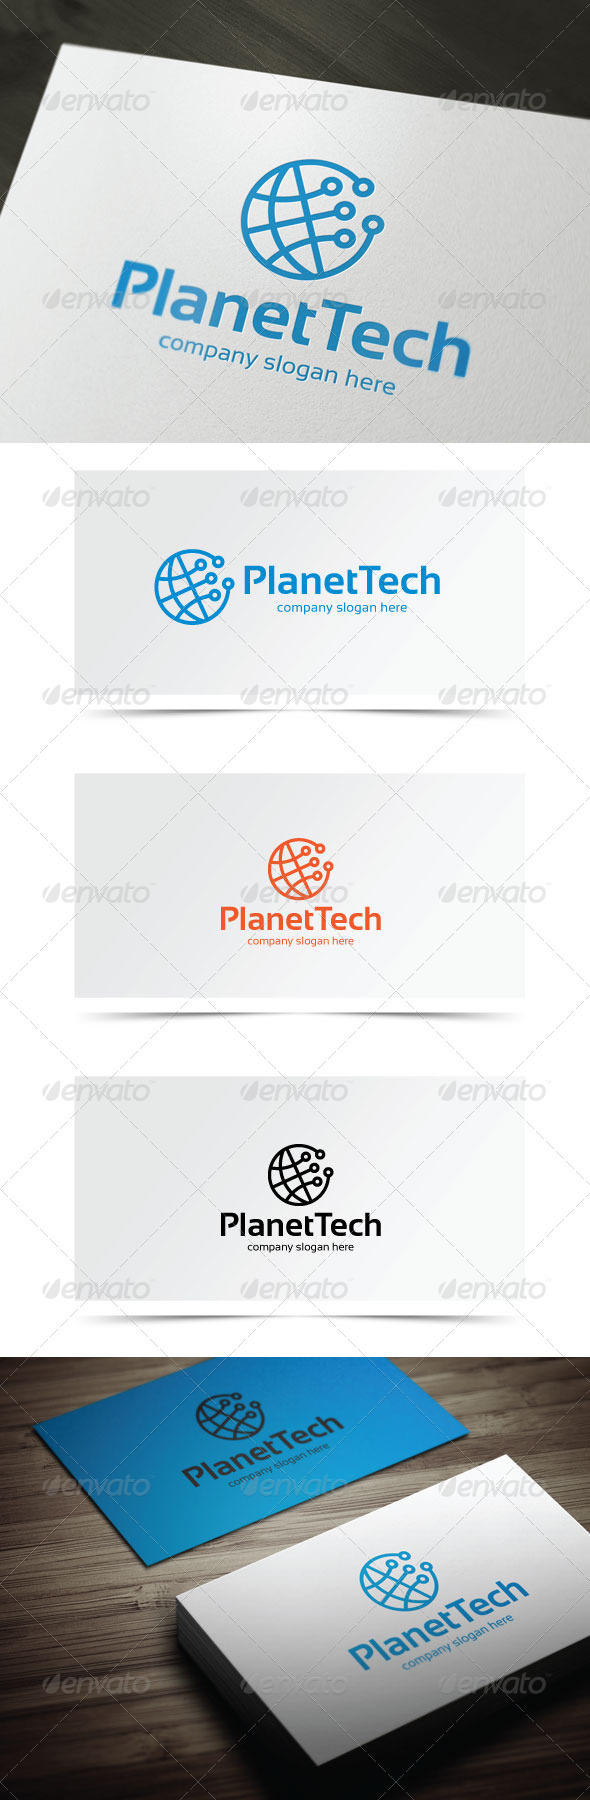 GraphicRiver Planet Tech 6726700